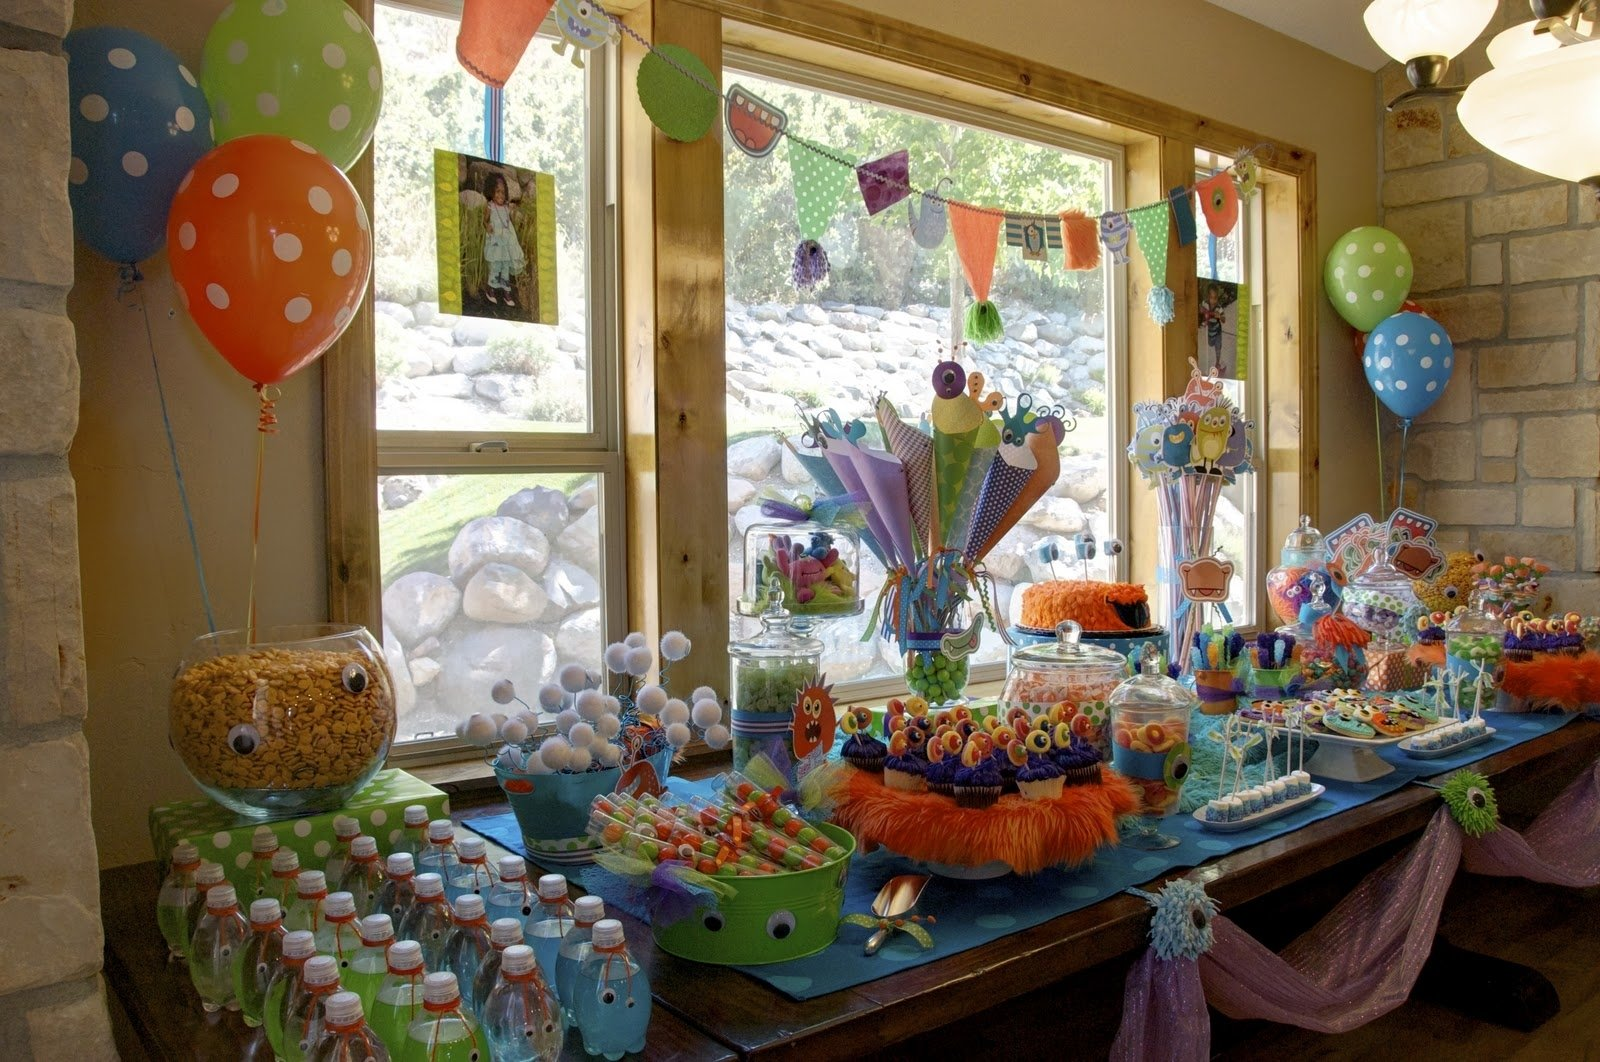 10 Most Recommended 3 Yr Old Birthday Ideas